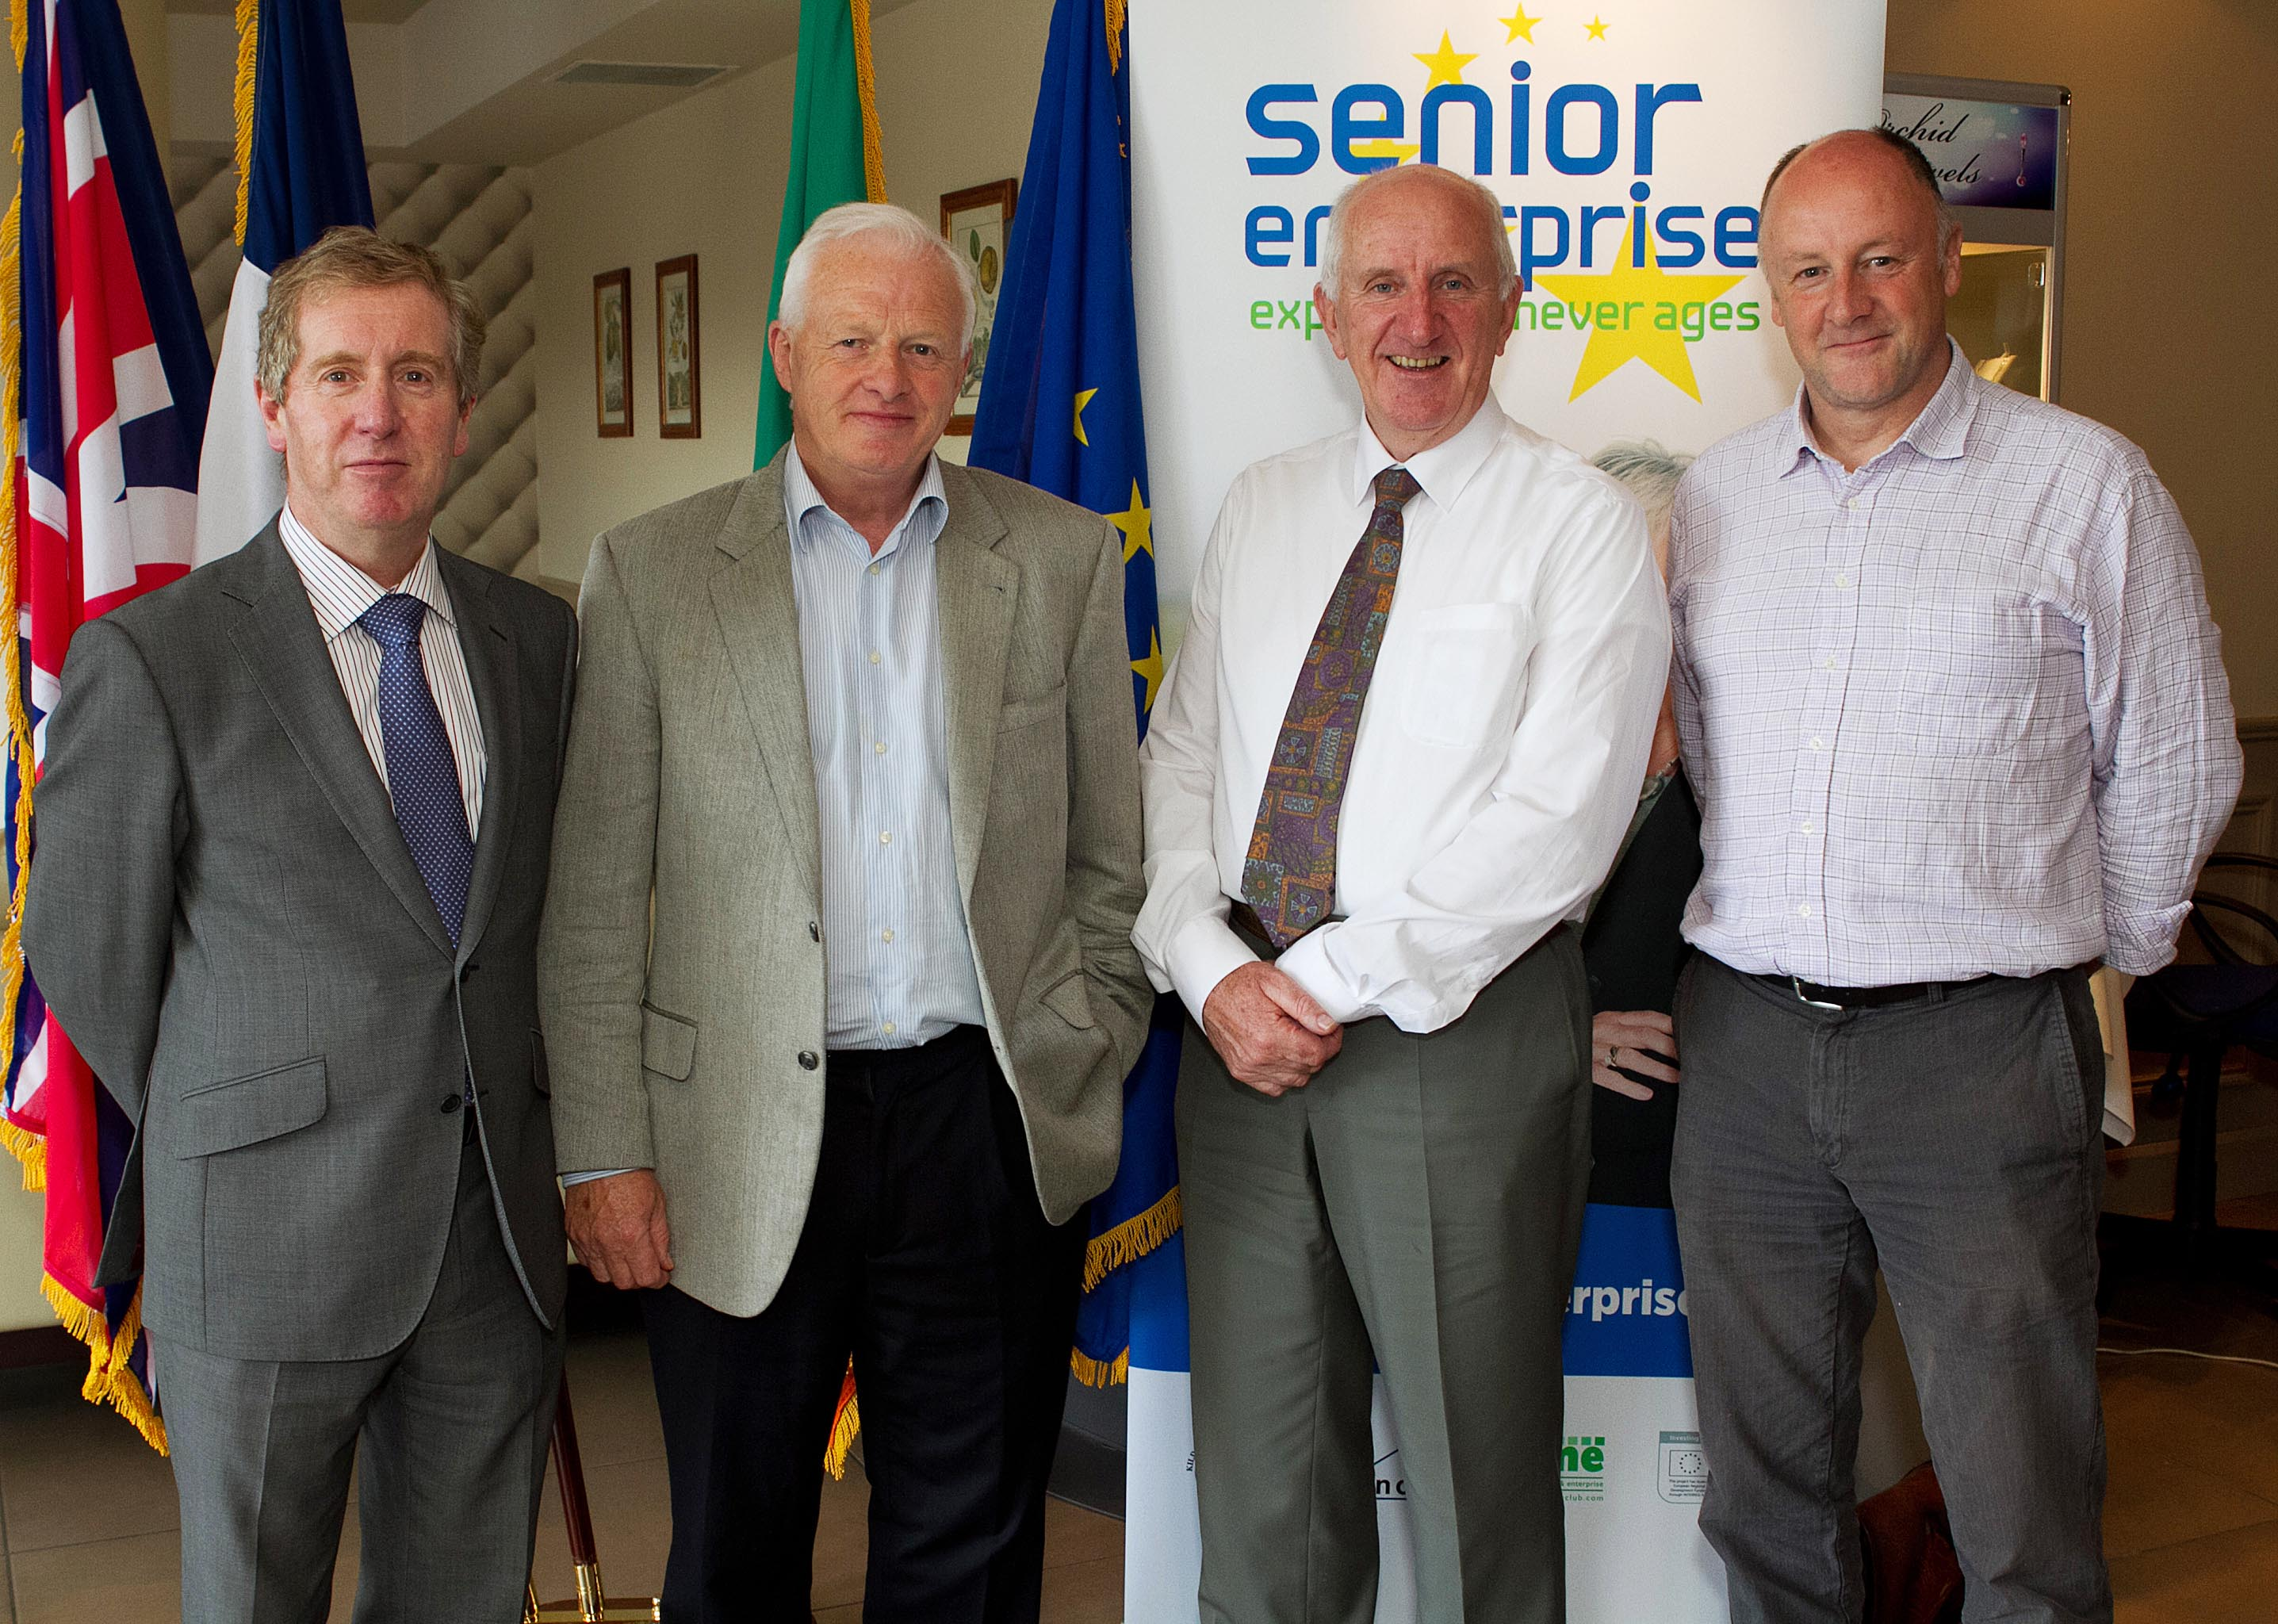 John Byrne, Project Director of Senior Enterprise with delegates attending the Senior Enterprise Workshop June 2012.